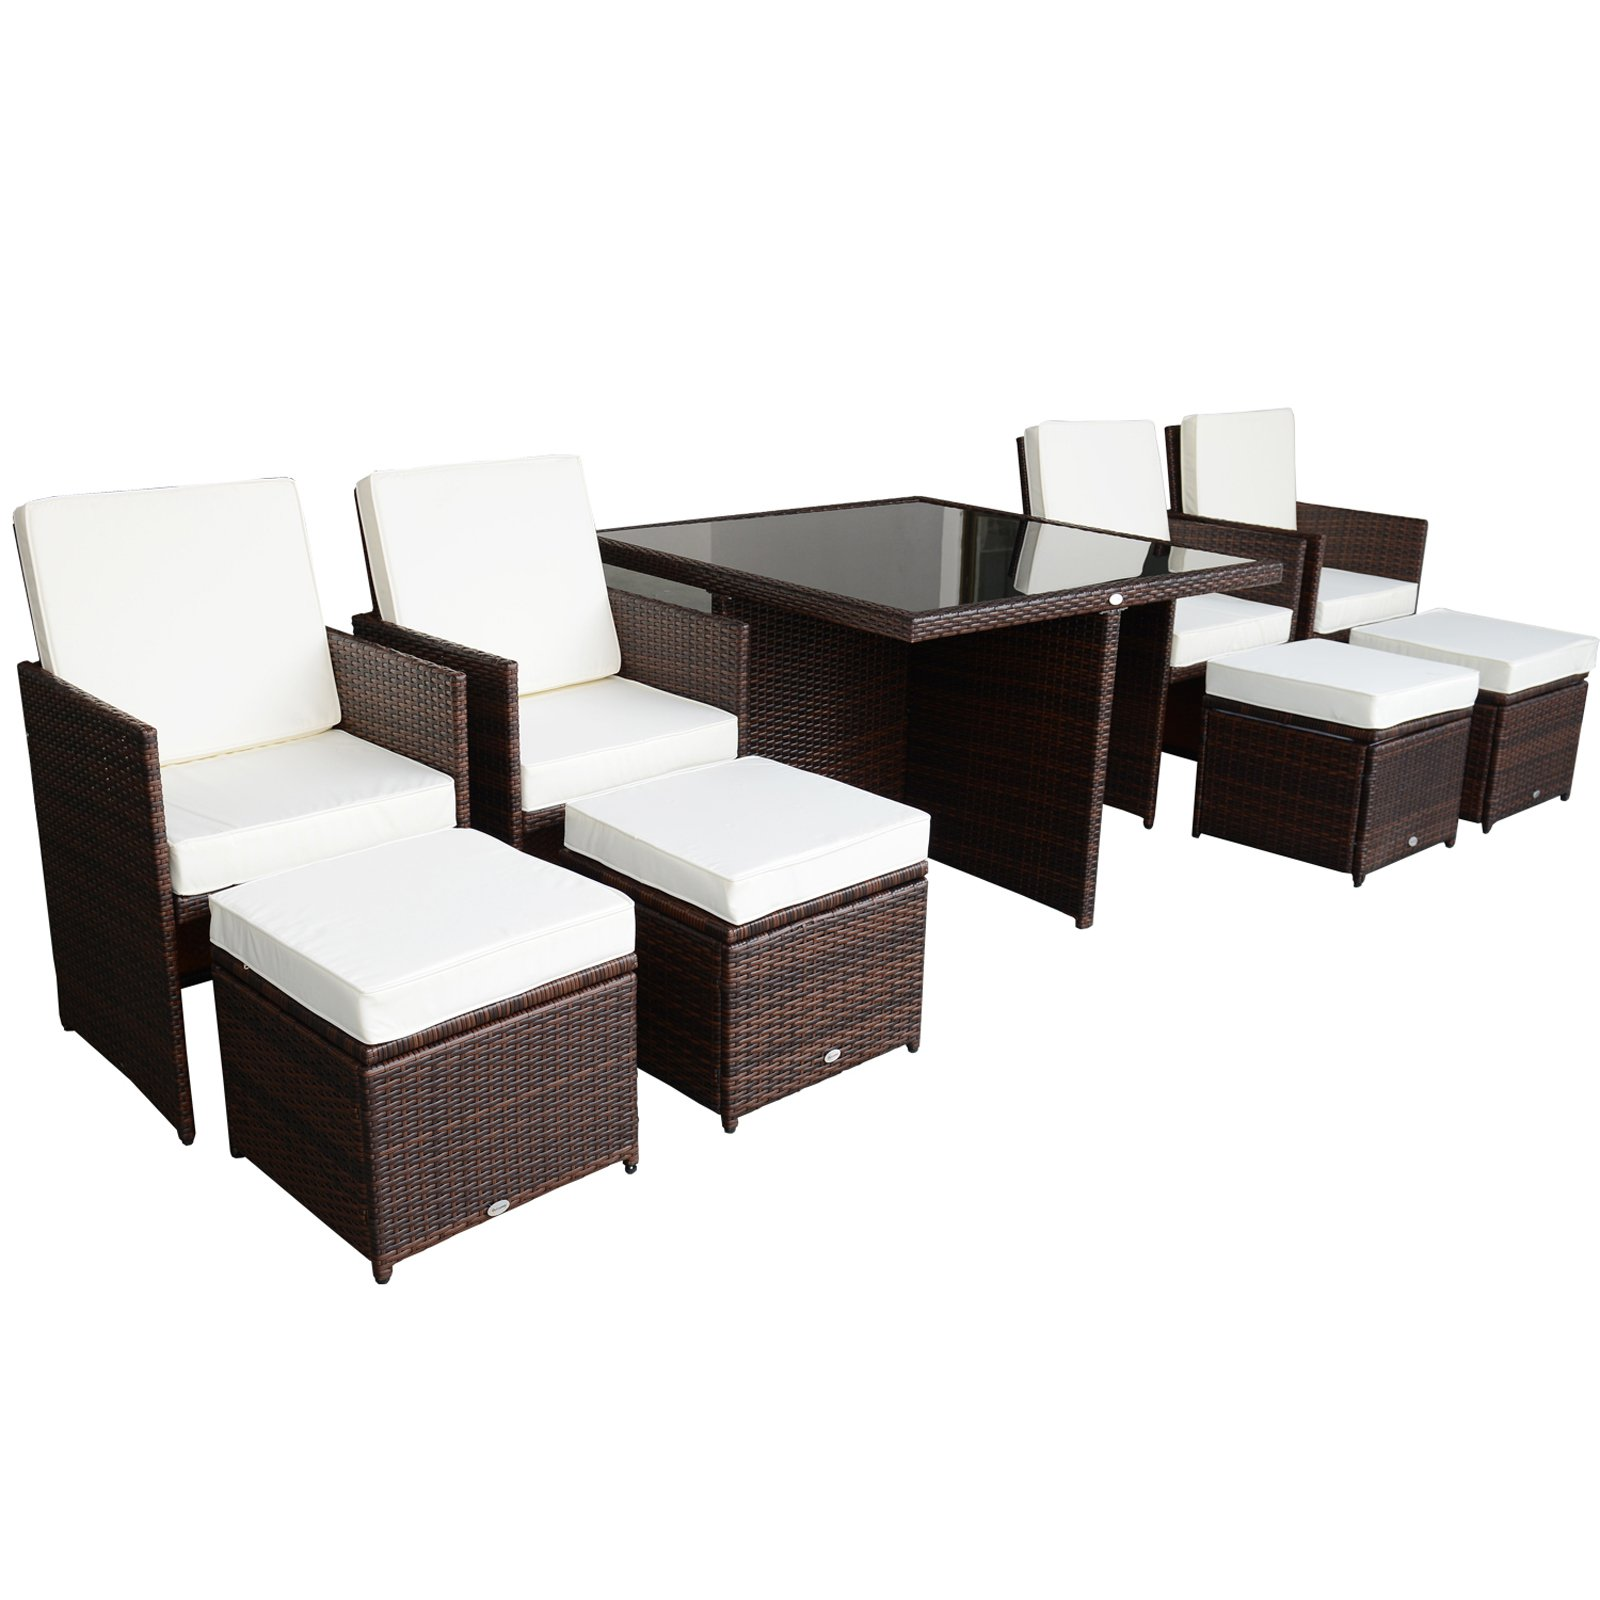 Outsunny 9 Piece PE Rattan Wicker Outdoor Nesting Patio Dining Table Set    Walmart.com